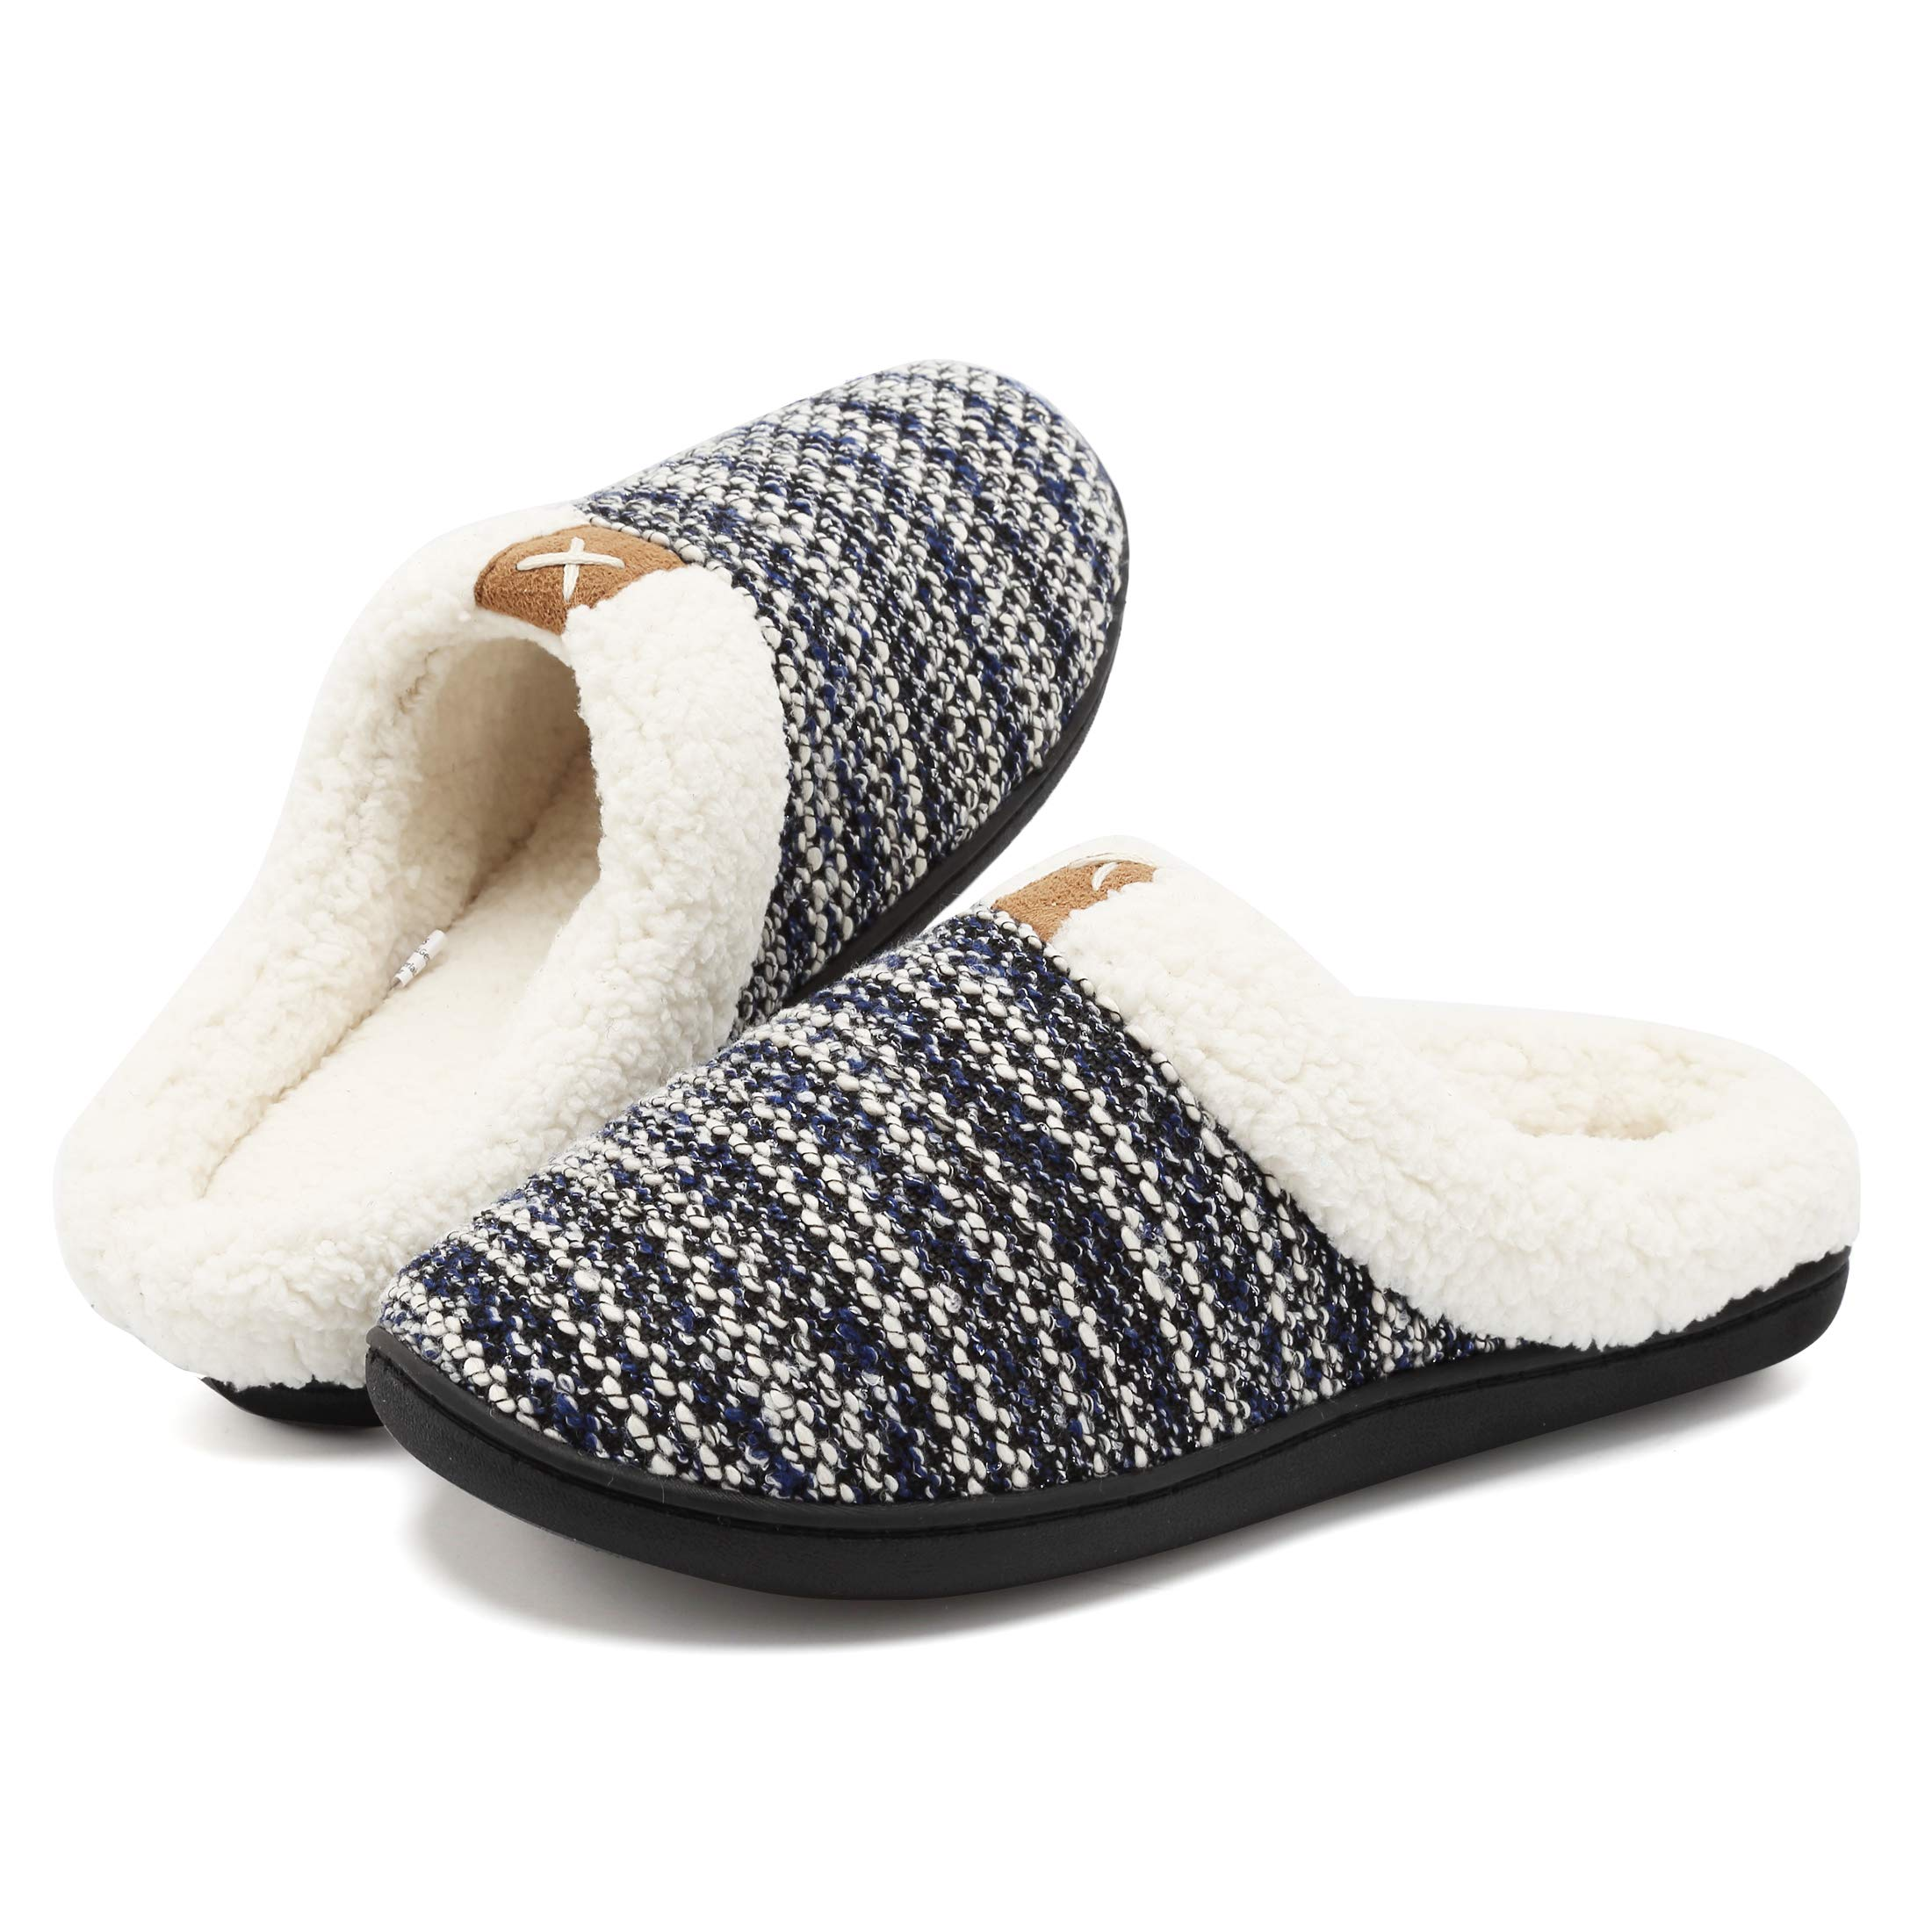 FCKEE Women's Comfort Memory Foam Slippers Knitted Upper Wool-Like Plush Lined House Shoes Indoor Outdoor, Anti-Skid TPR Sole,USFMT04-Navy-42/43